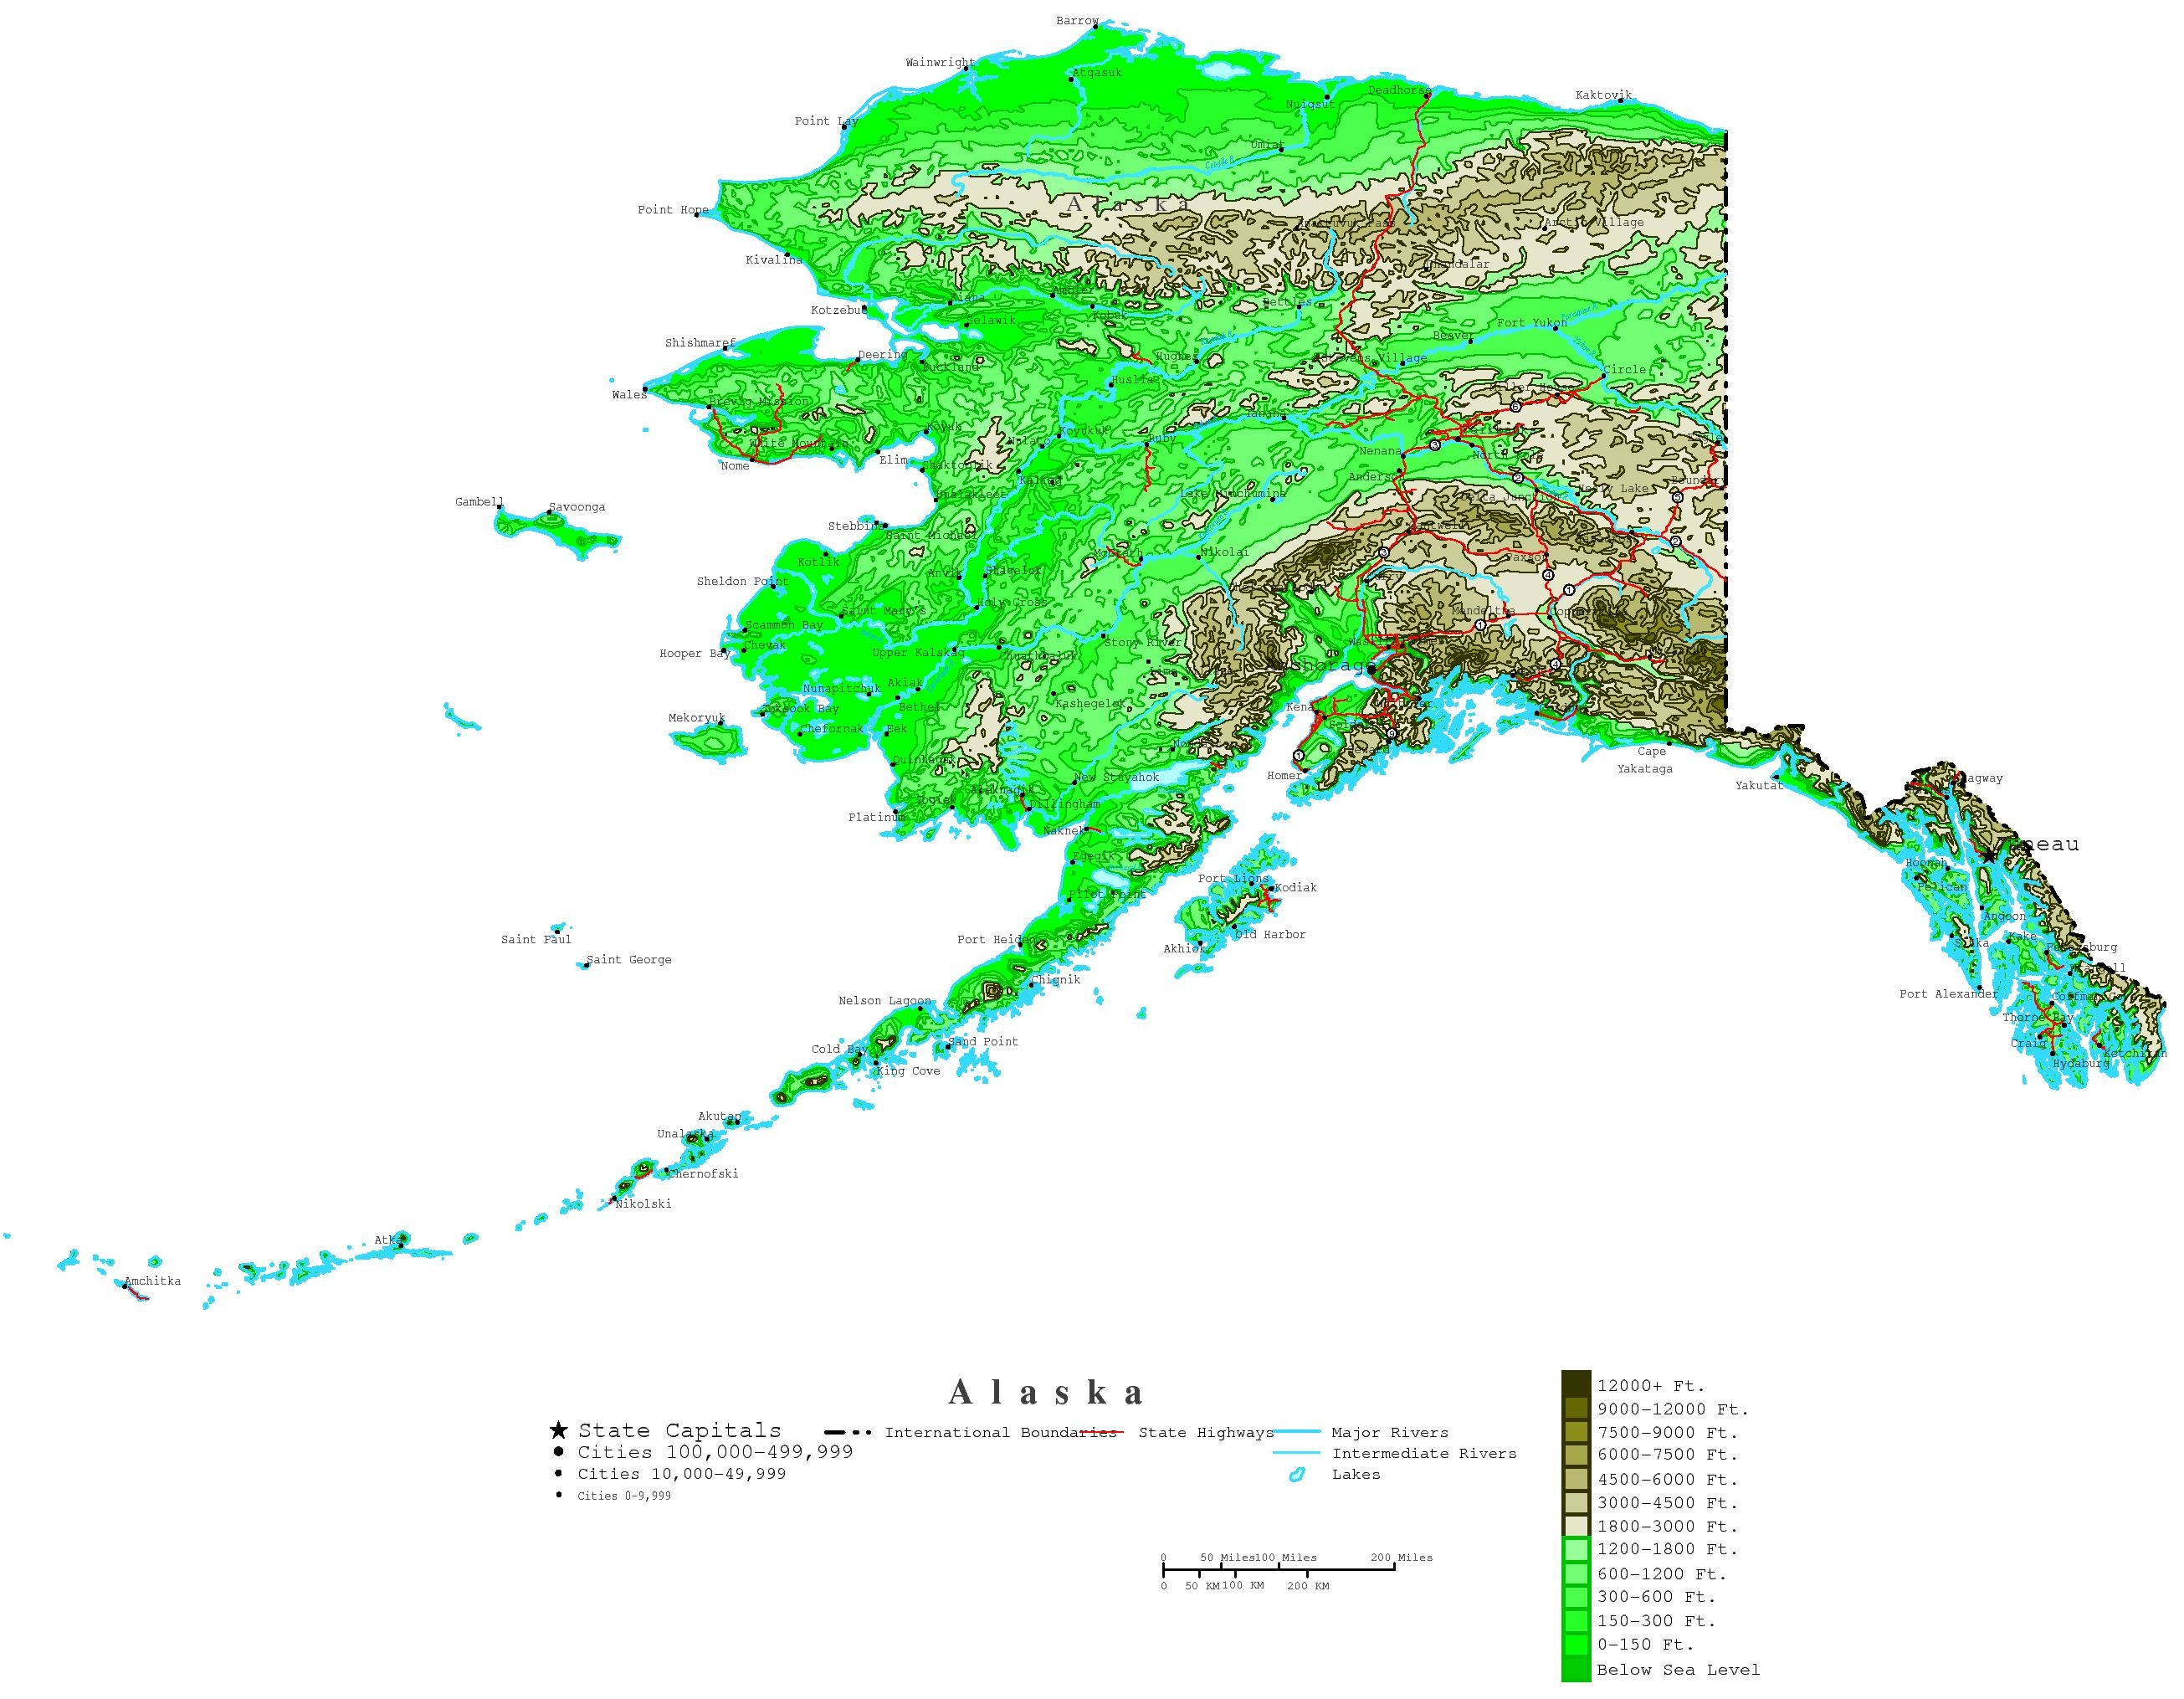 Printable Map Of Alaska And Travel Information | Download Free - Free Printable Pictures Of Alaska